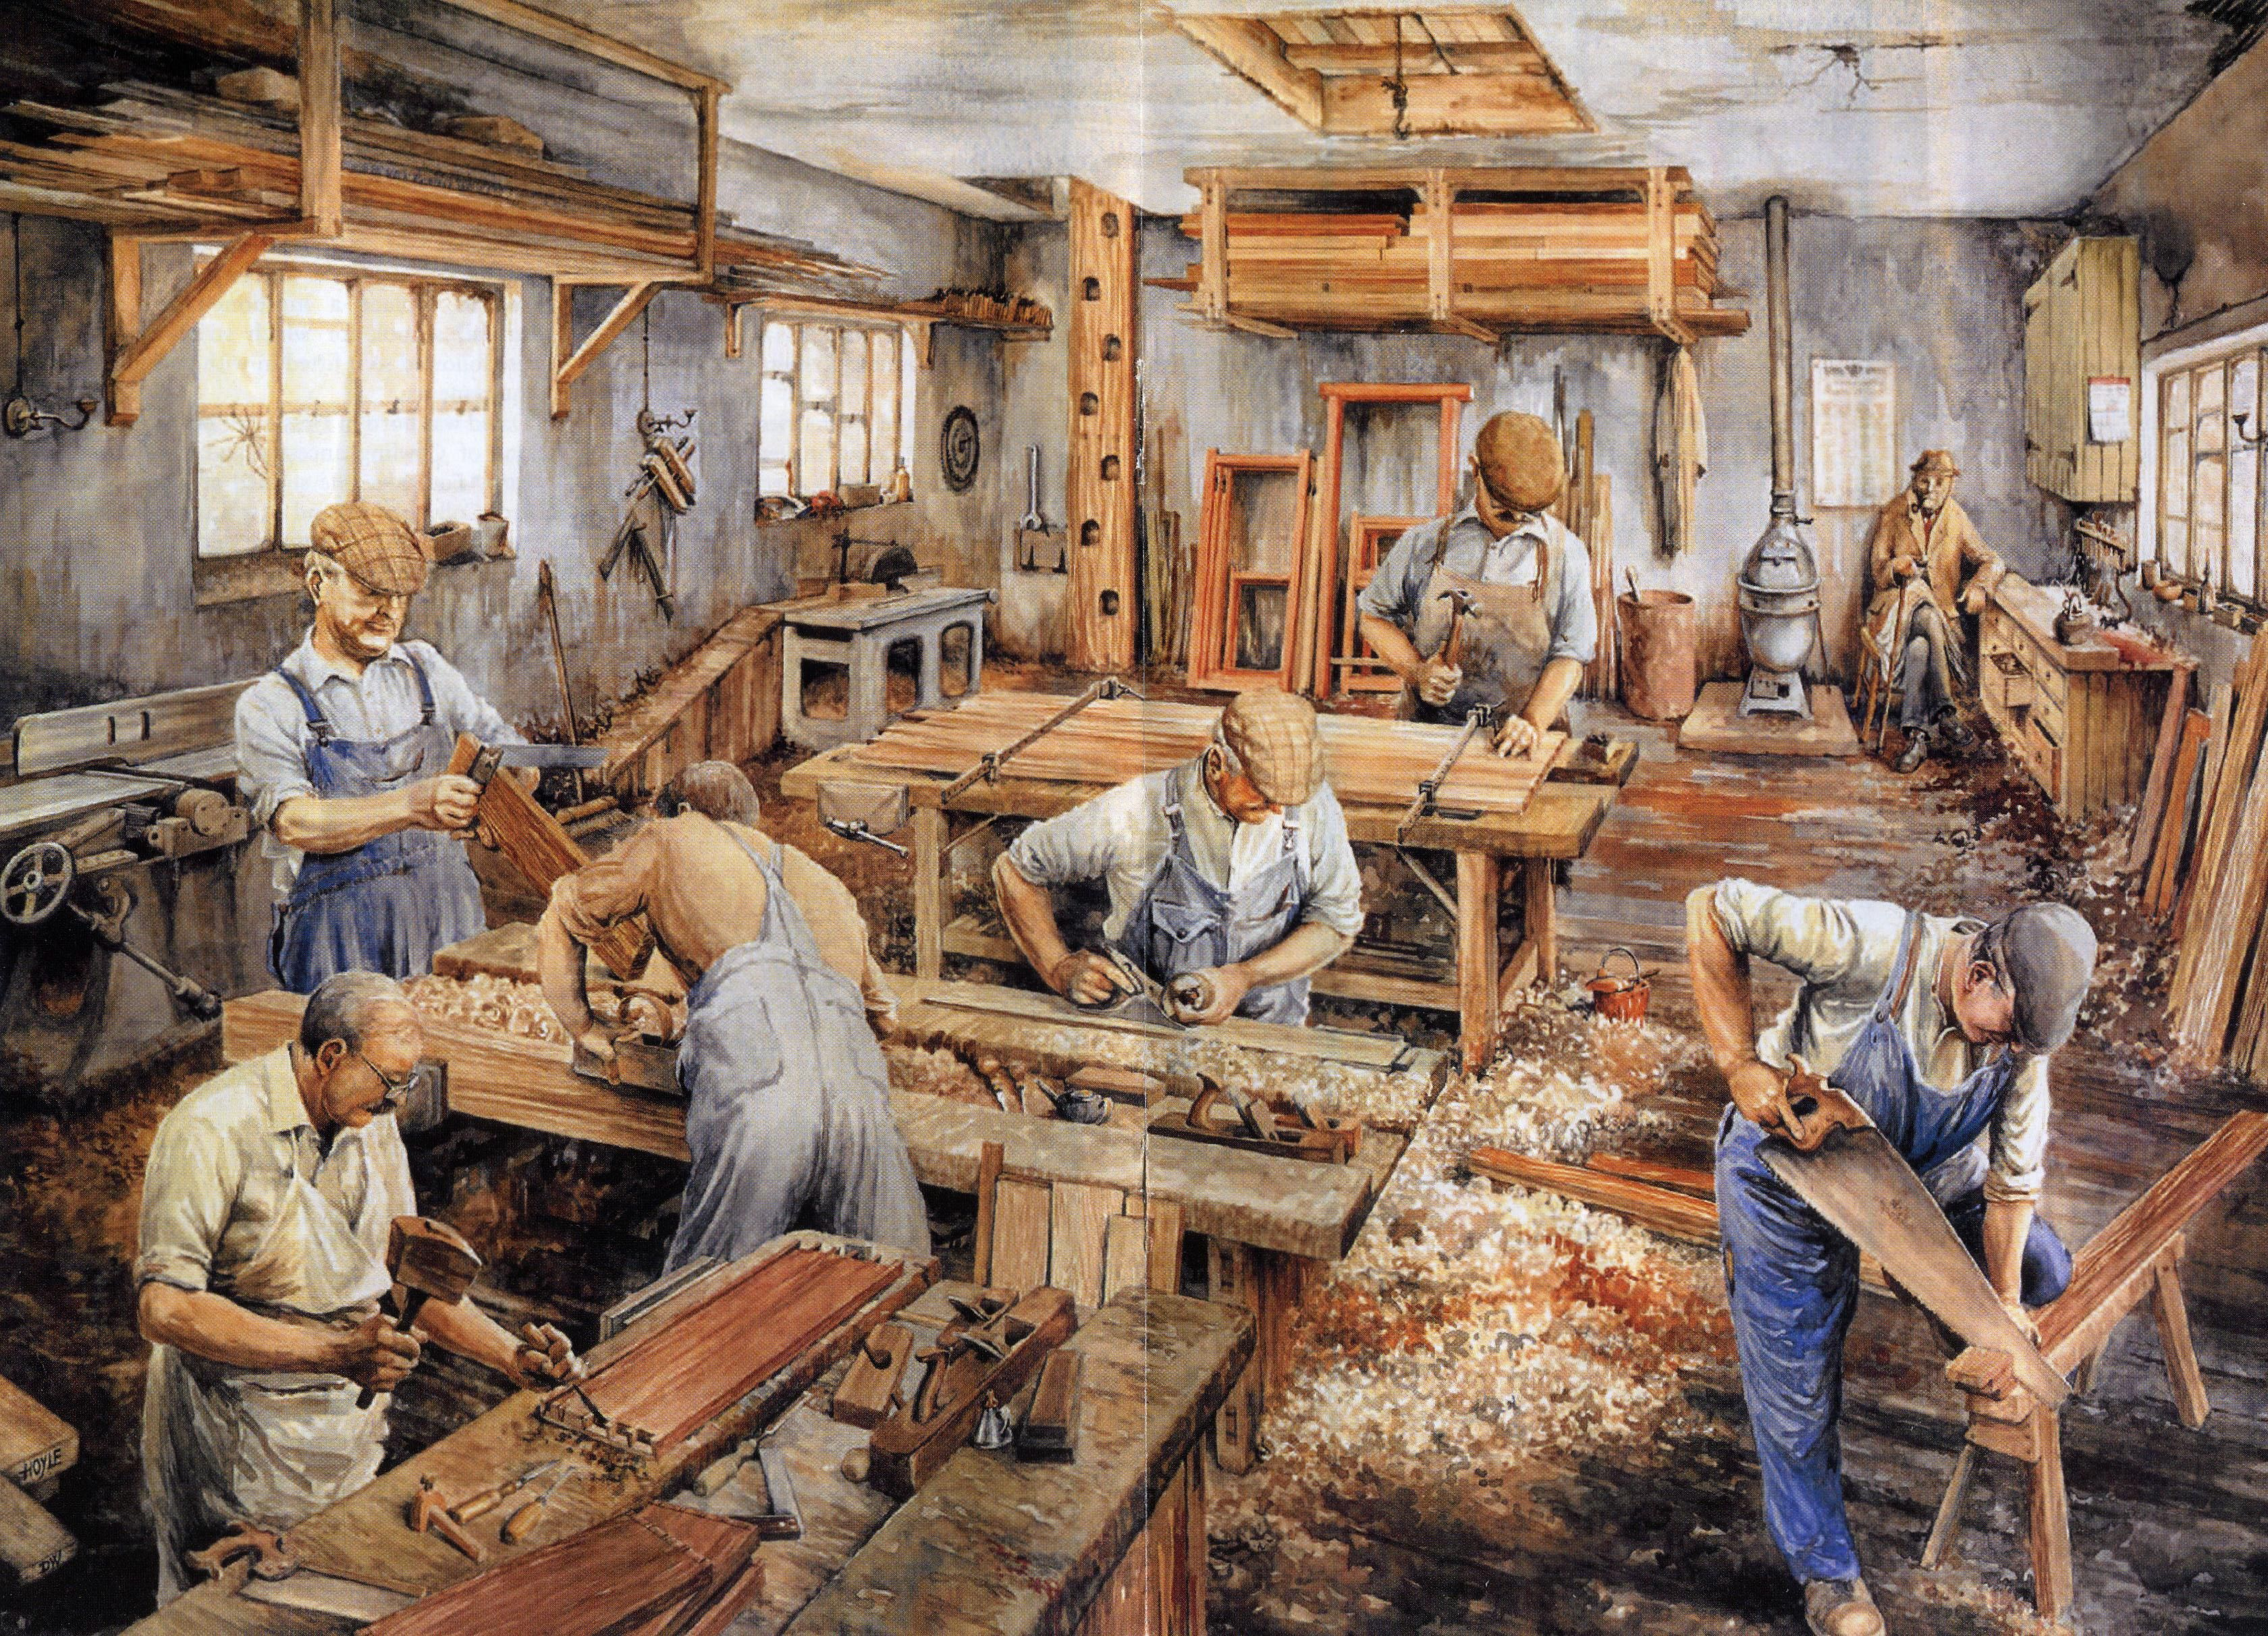 How Carpenters used to work in The Old Days  Vintage